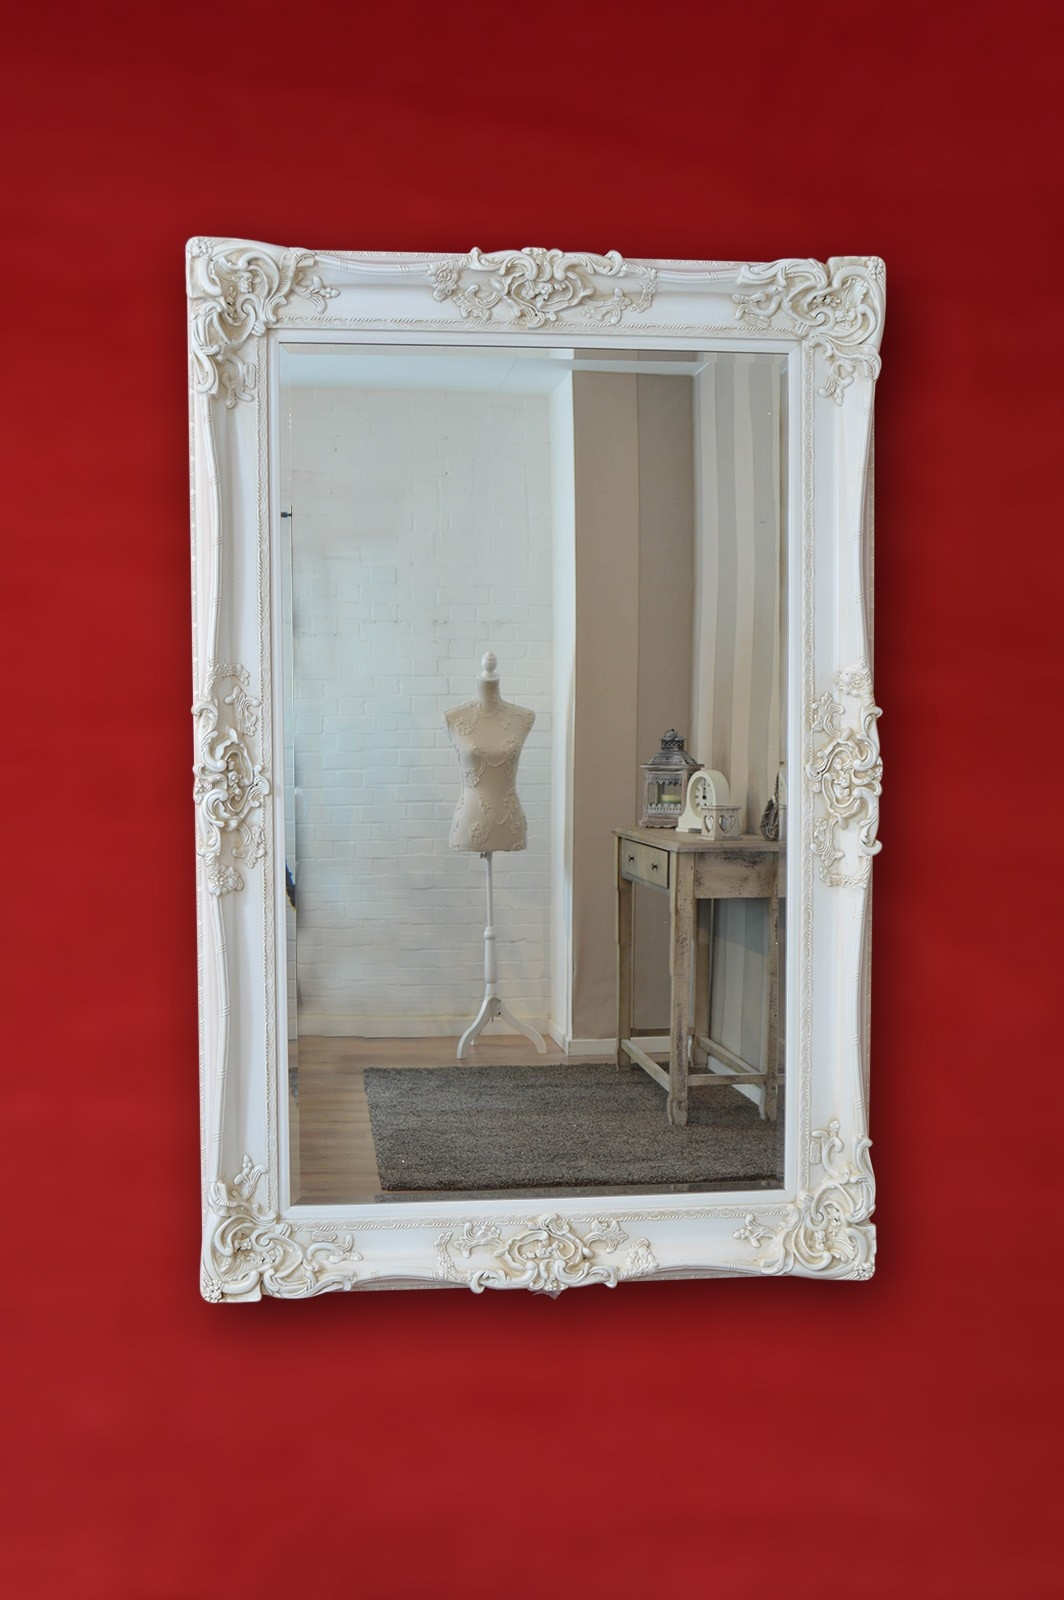 Large Ivory Ornate Frame Antique Design Big Wall Mirror 6ft X 4ft In Ivory Ornate Mirror (Image 8 of 15)